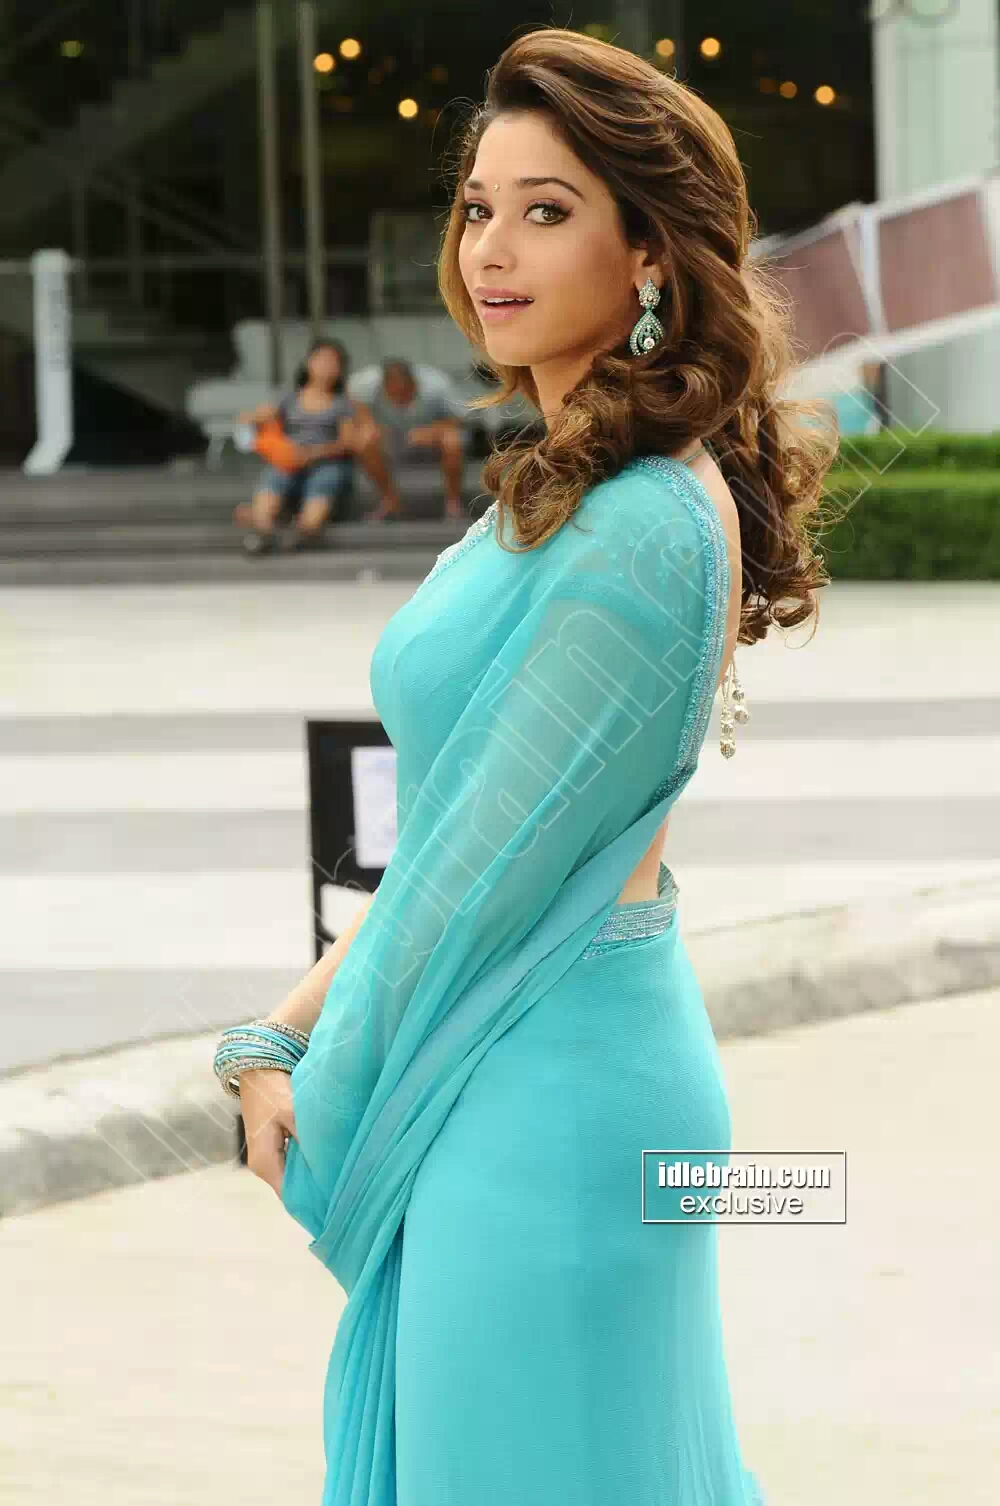 Tamanna Blue Saree: TAMILACTRESS2020.BLOGSPOT.IN: Tamanna Hot Side View Of